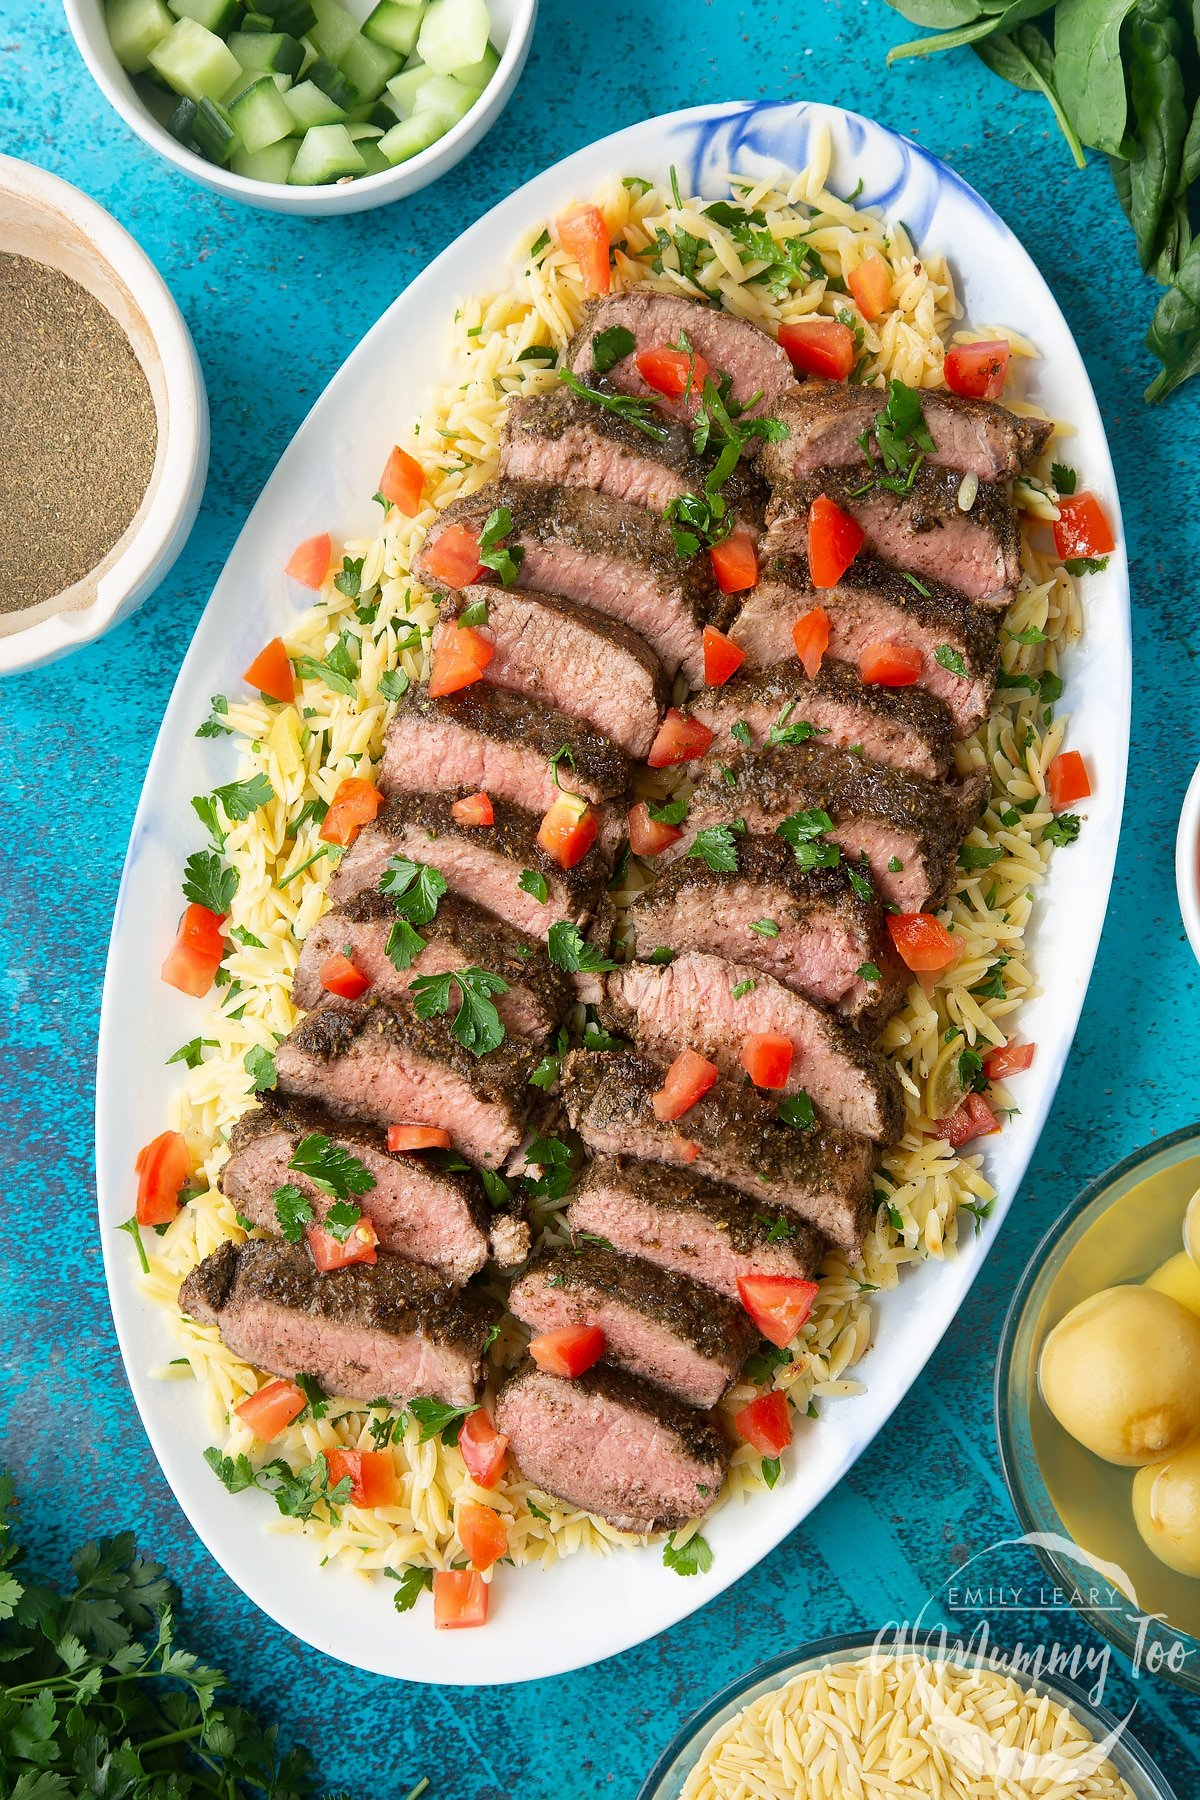 Slices of herby lamb arranged on a bed of orzo on an oval platter. The dish has been scattered with parsley and chopped tomatoes.